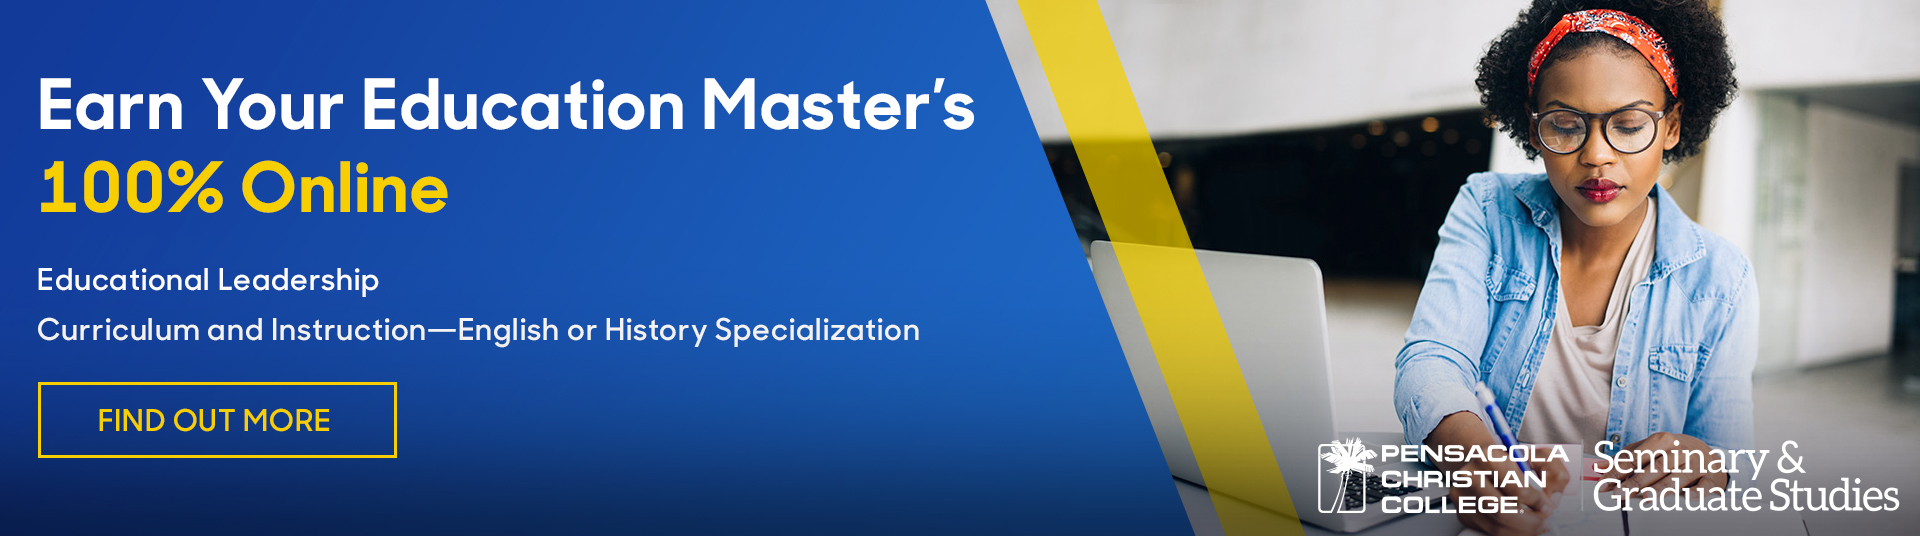 Earn your Education Master's 100% Online